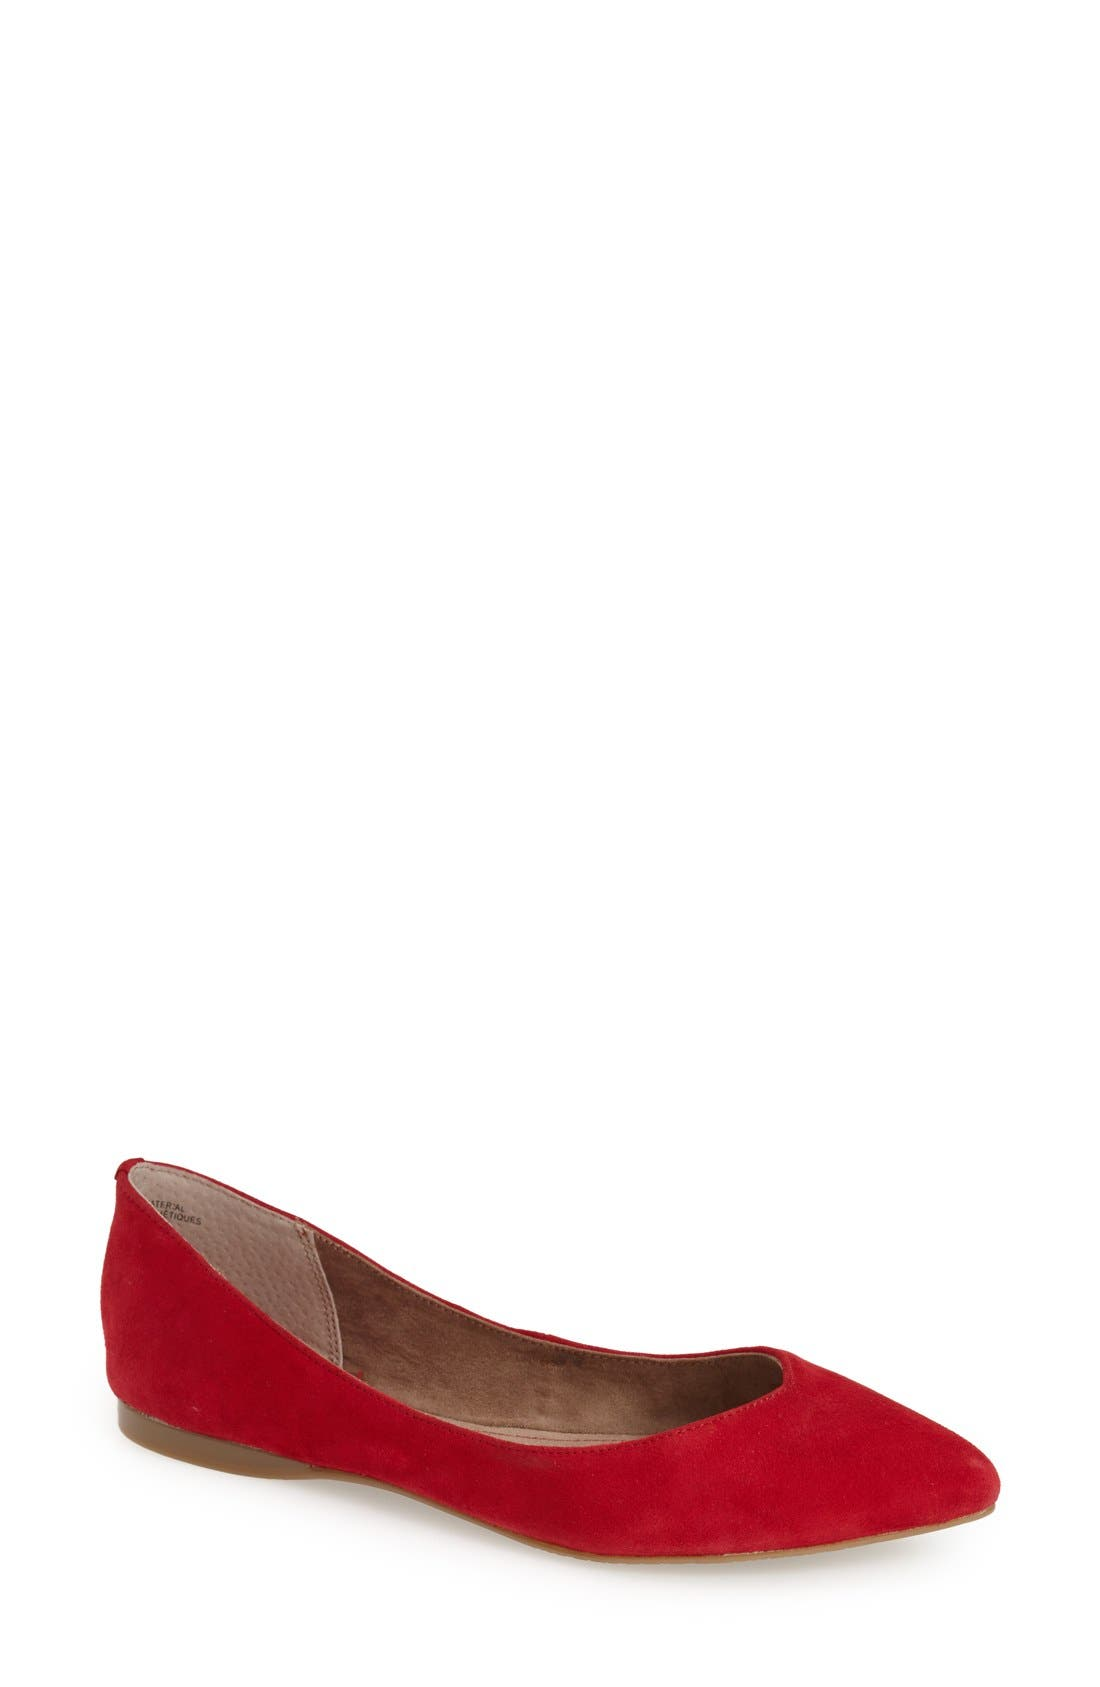 'Moveover' Pointy Toe Leather Flat,                         Main,                         color, Red Suede